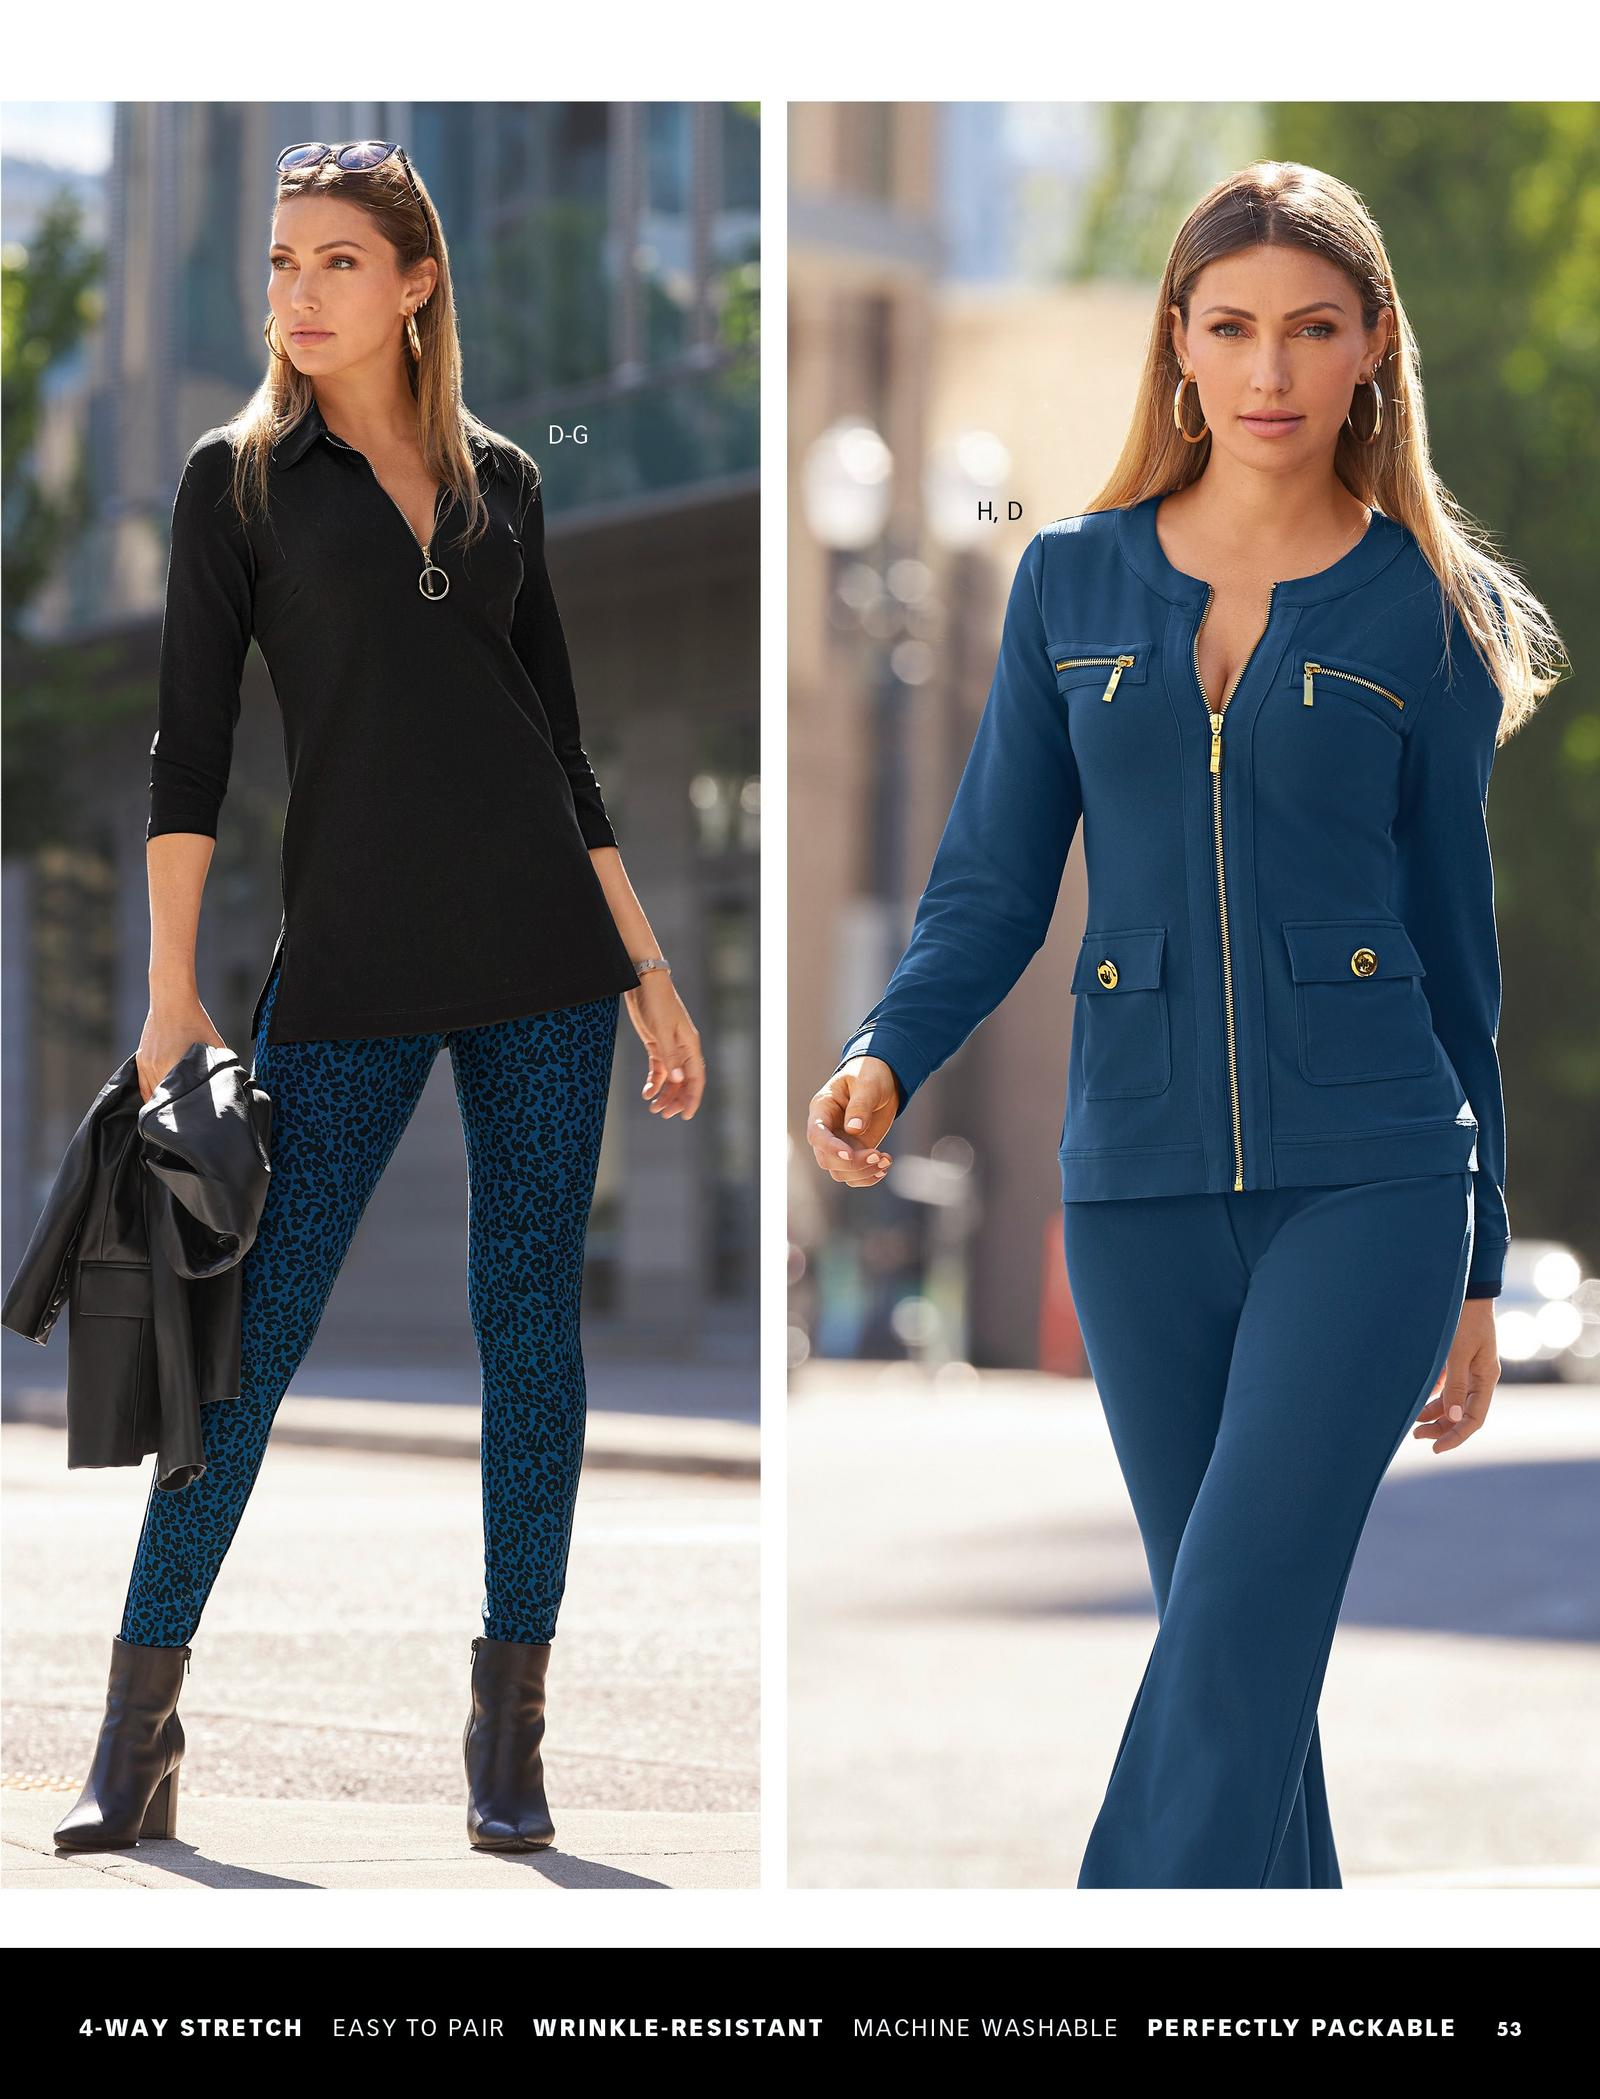 left model wearing a black collared ring detail zip-front tunic, blue animal print leggings, black leather booties, gold hoop earrings, and holding a black leather jacket. right model wearing a navy two-piece jacket and pant set and gold hoop earrings.